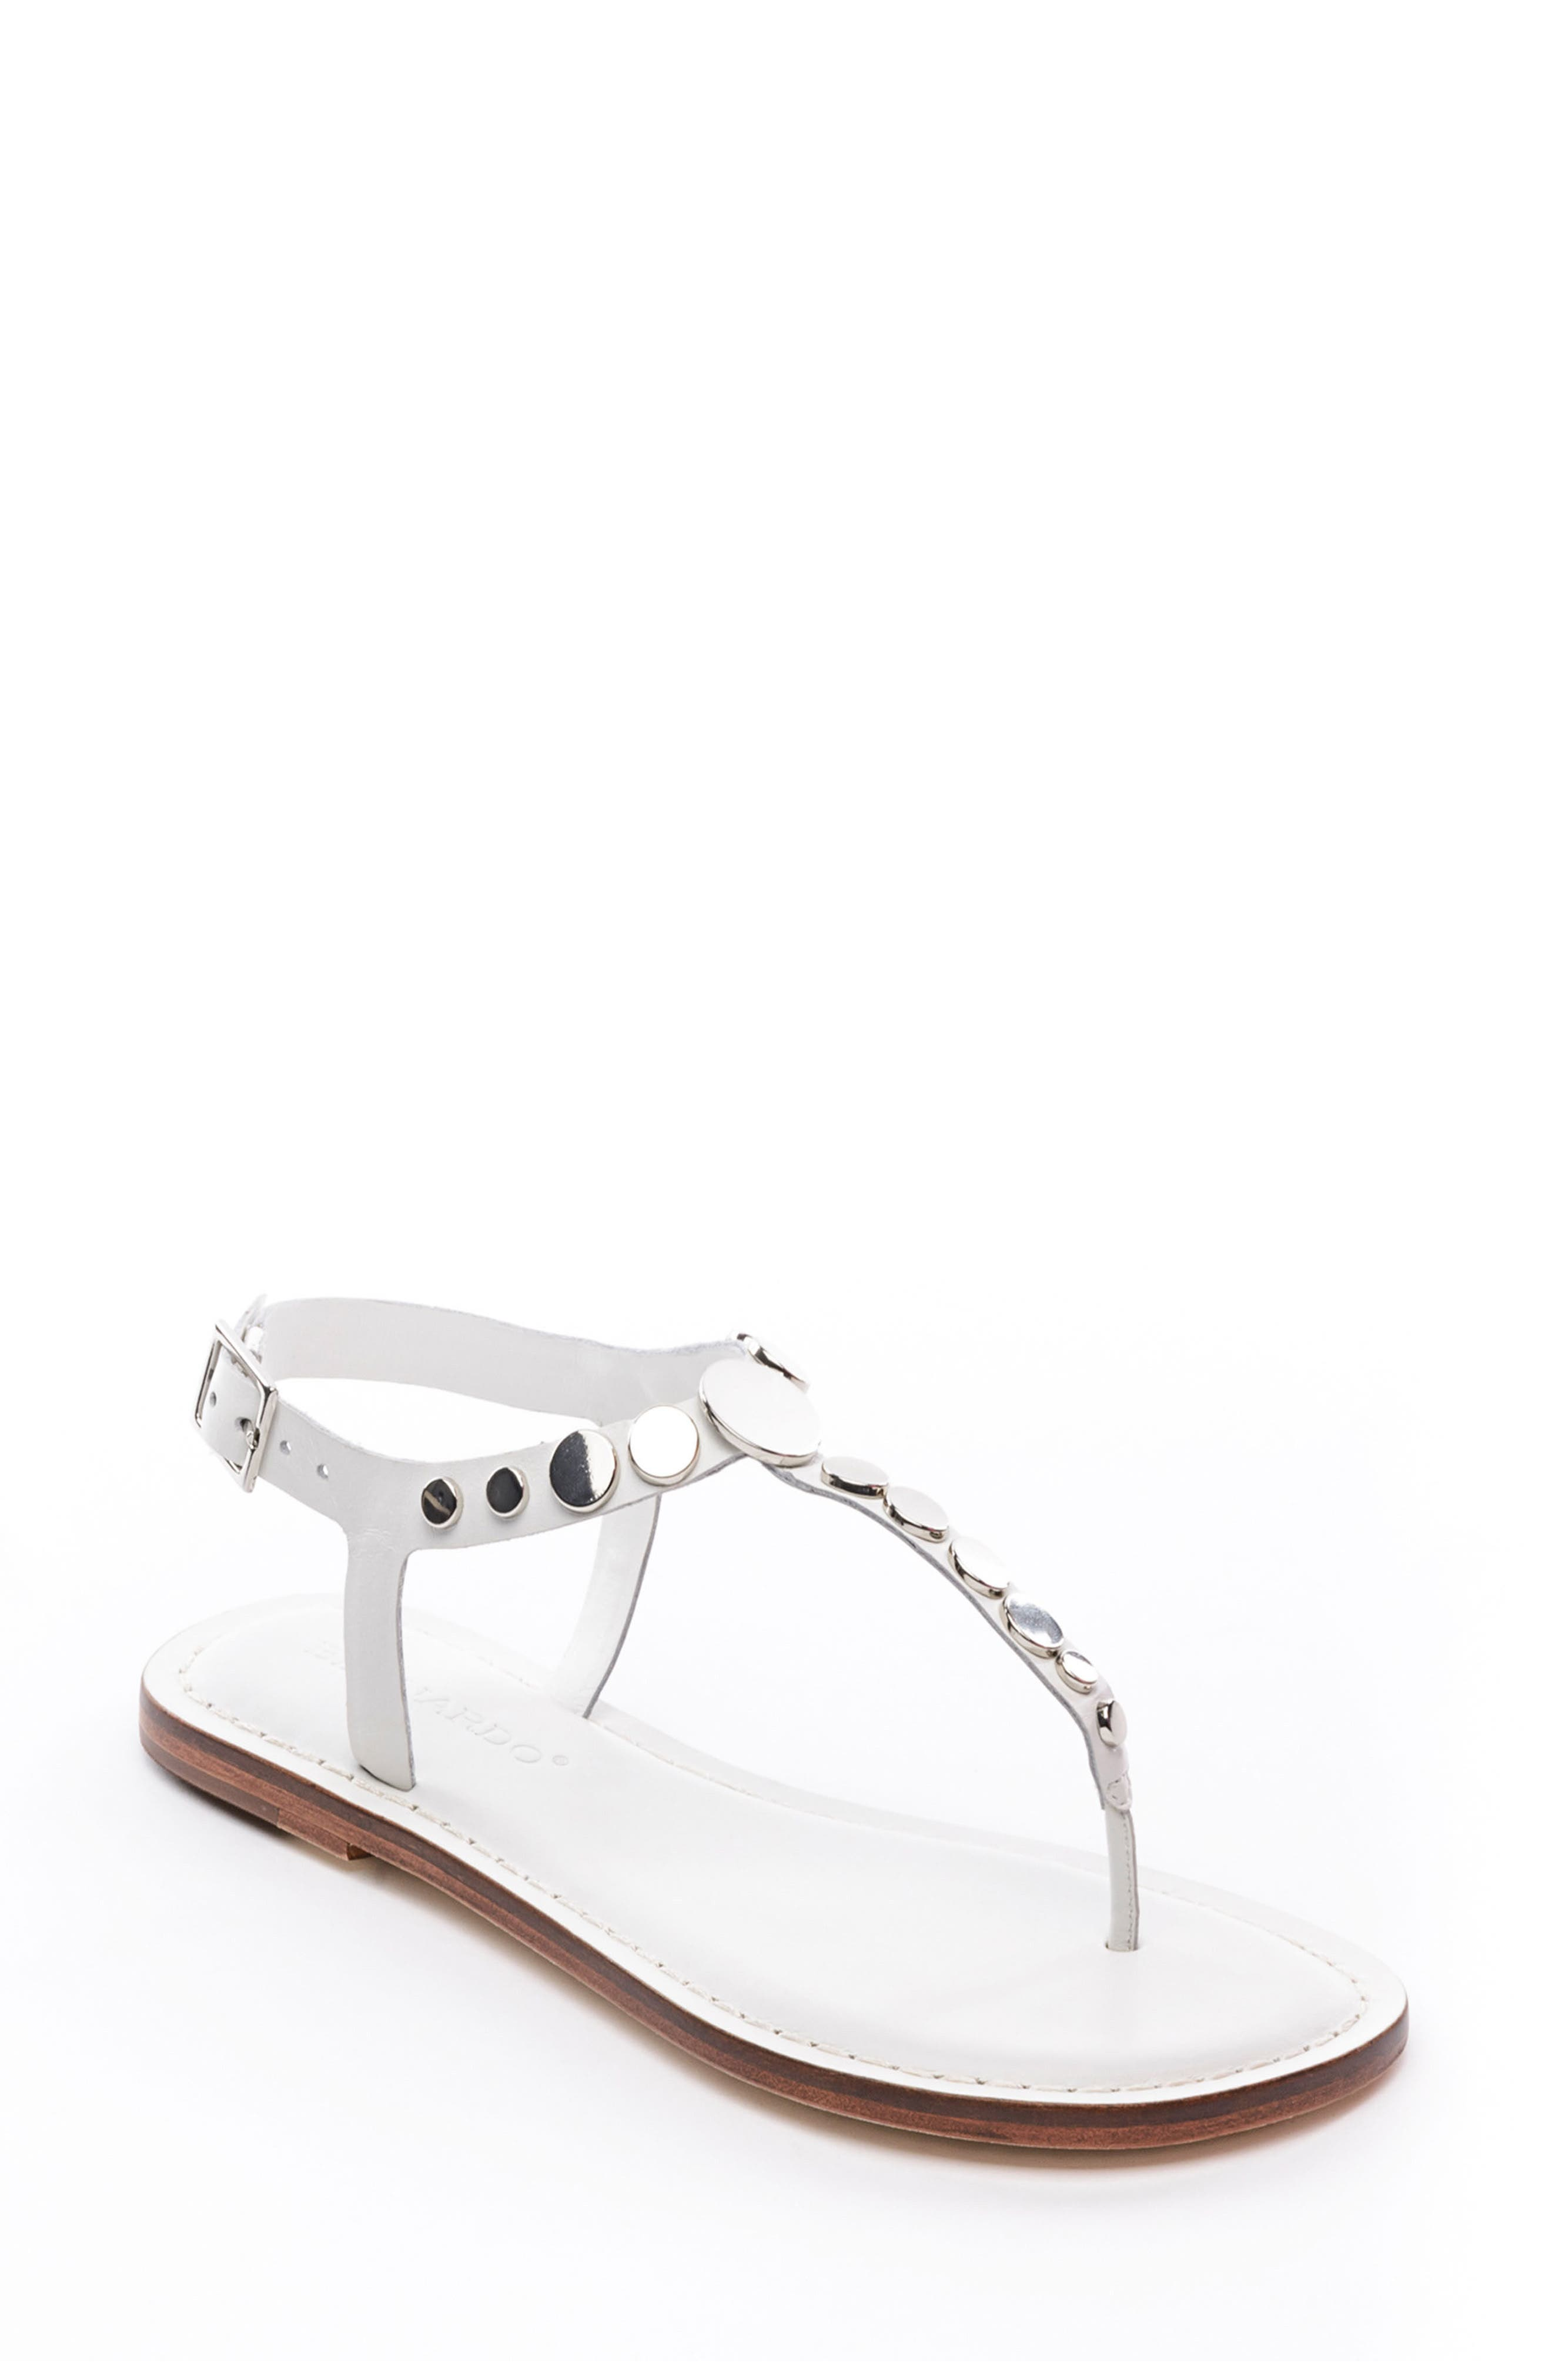 May Sandal,                         Main,                         color, White Leather